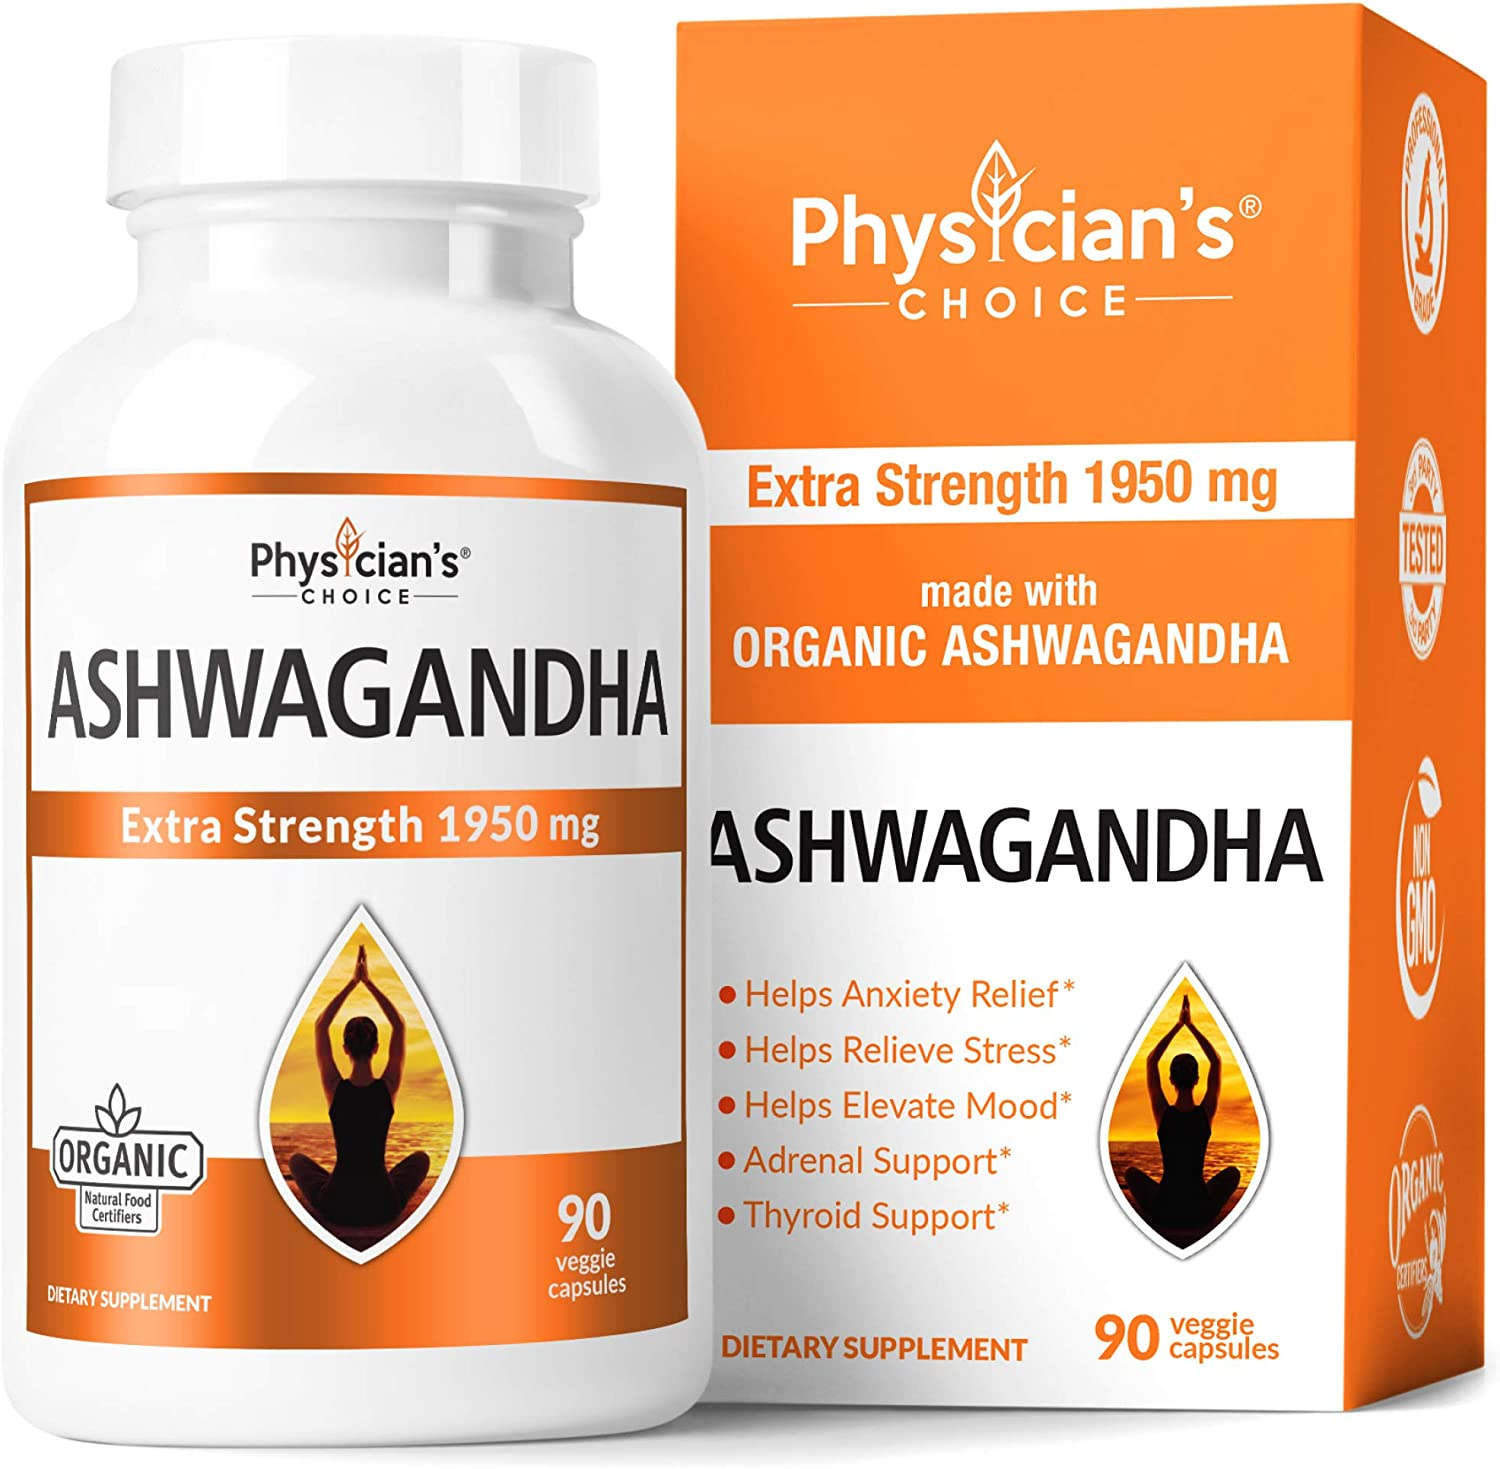 Ashwagandha 1950mg Organic Ashwagandha Root Powder Extract of Black Pepper Anxiety Relief, Thyroid Support, Cortisol & Adrenal Support, Anti Anxiety & Adrenal Fatigue Supplements 90 Veggie Capsules: Health & Personal Care